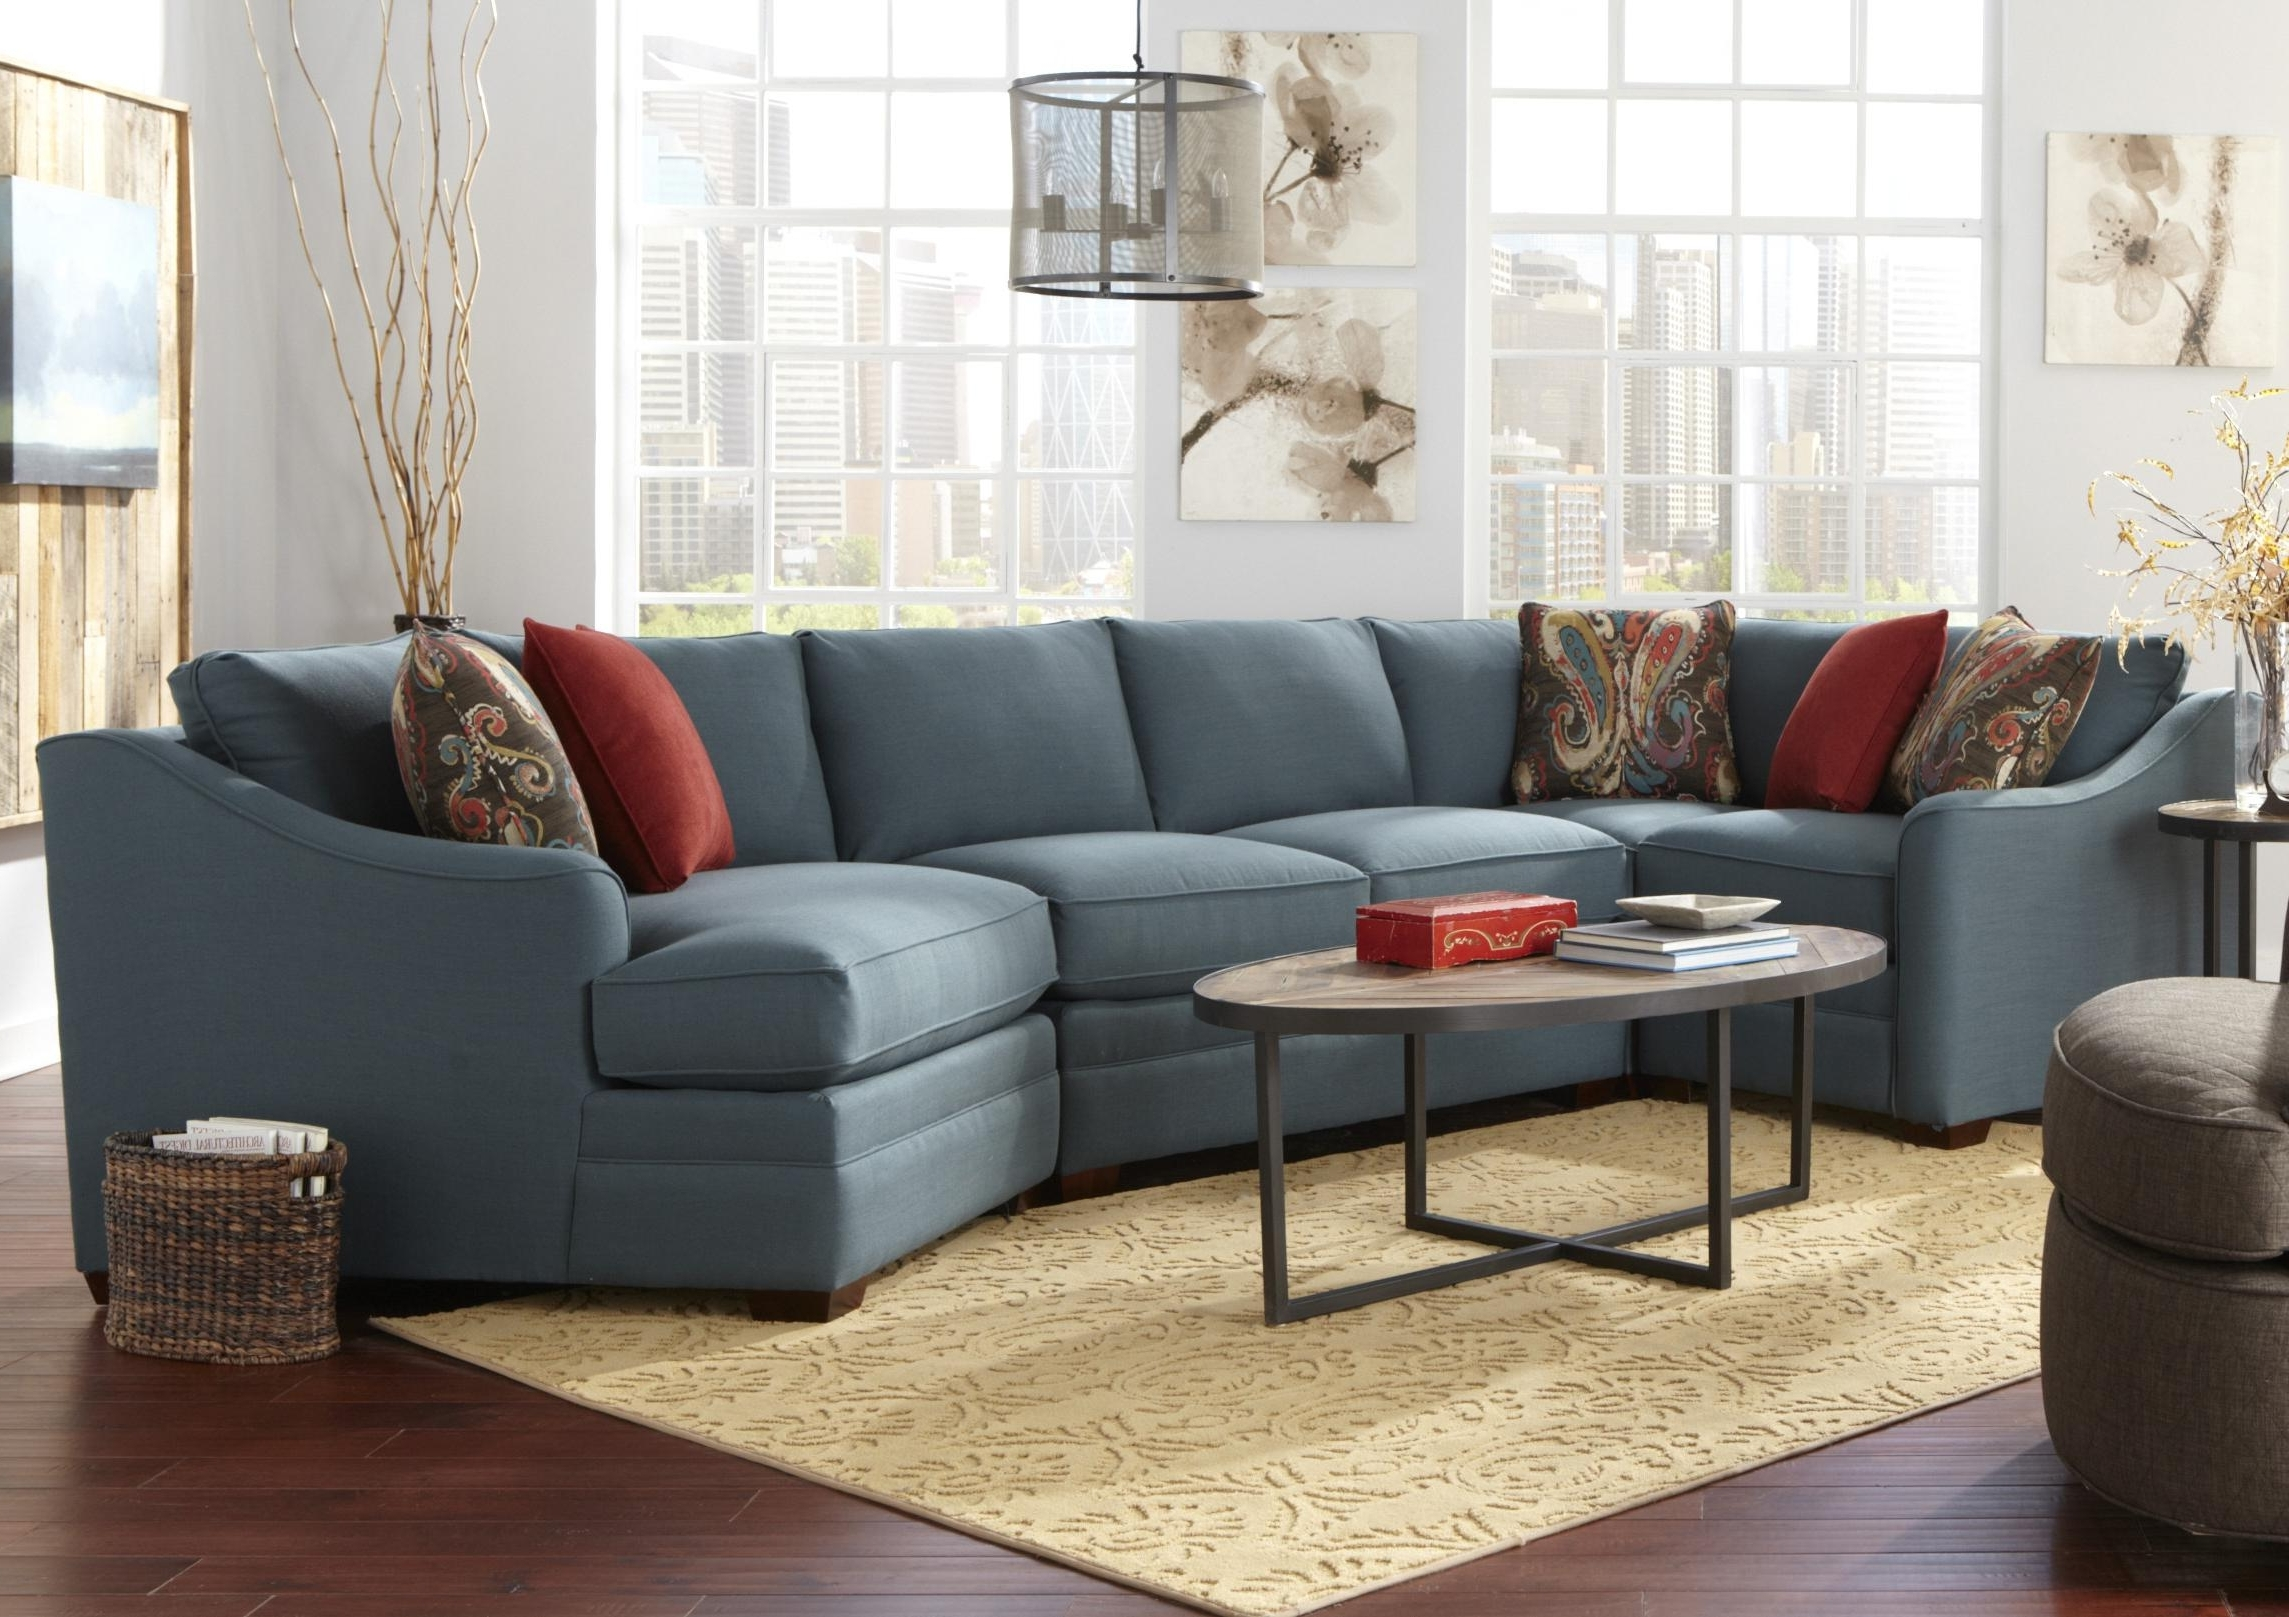 Harrisburg Pa Sectional Sofas For 2017 Four Piece <B>Customizable</b> Sectional Sofa With Raf Cuddler (View 10 of 15)